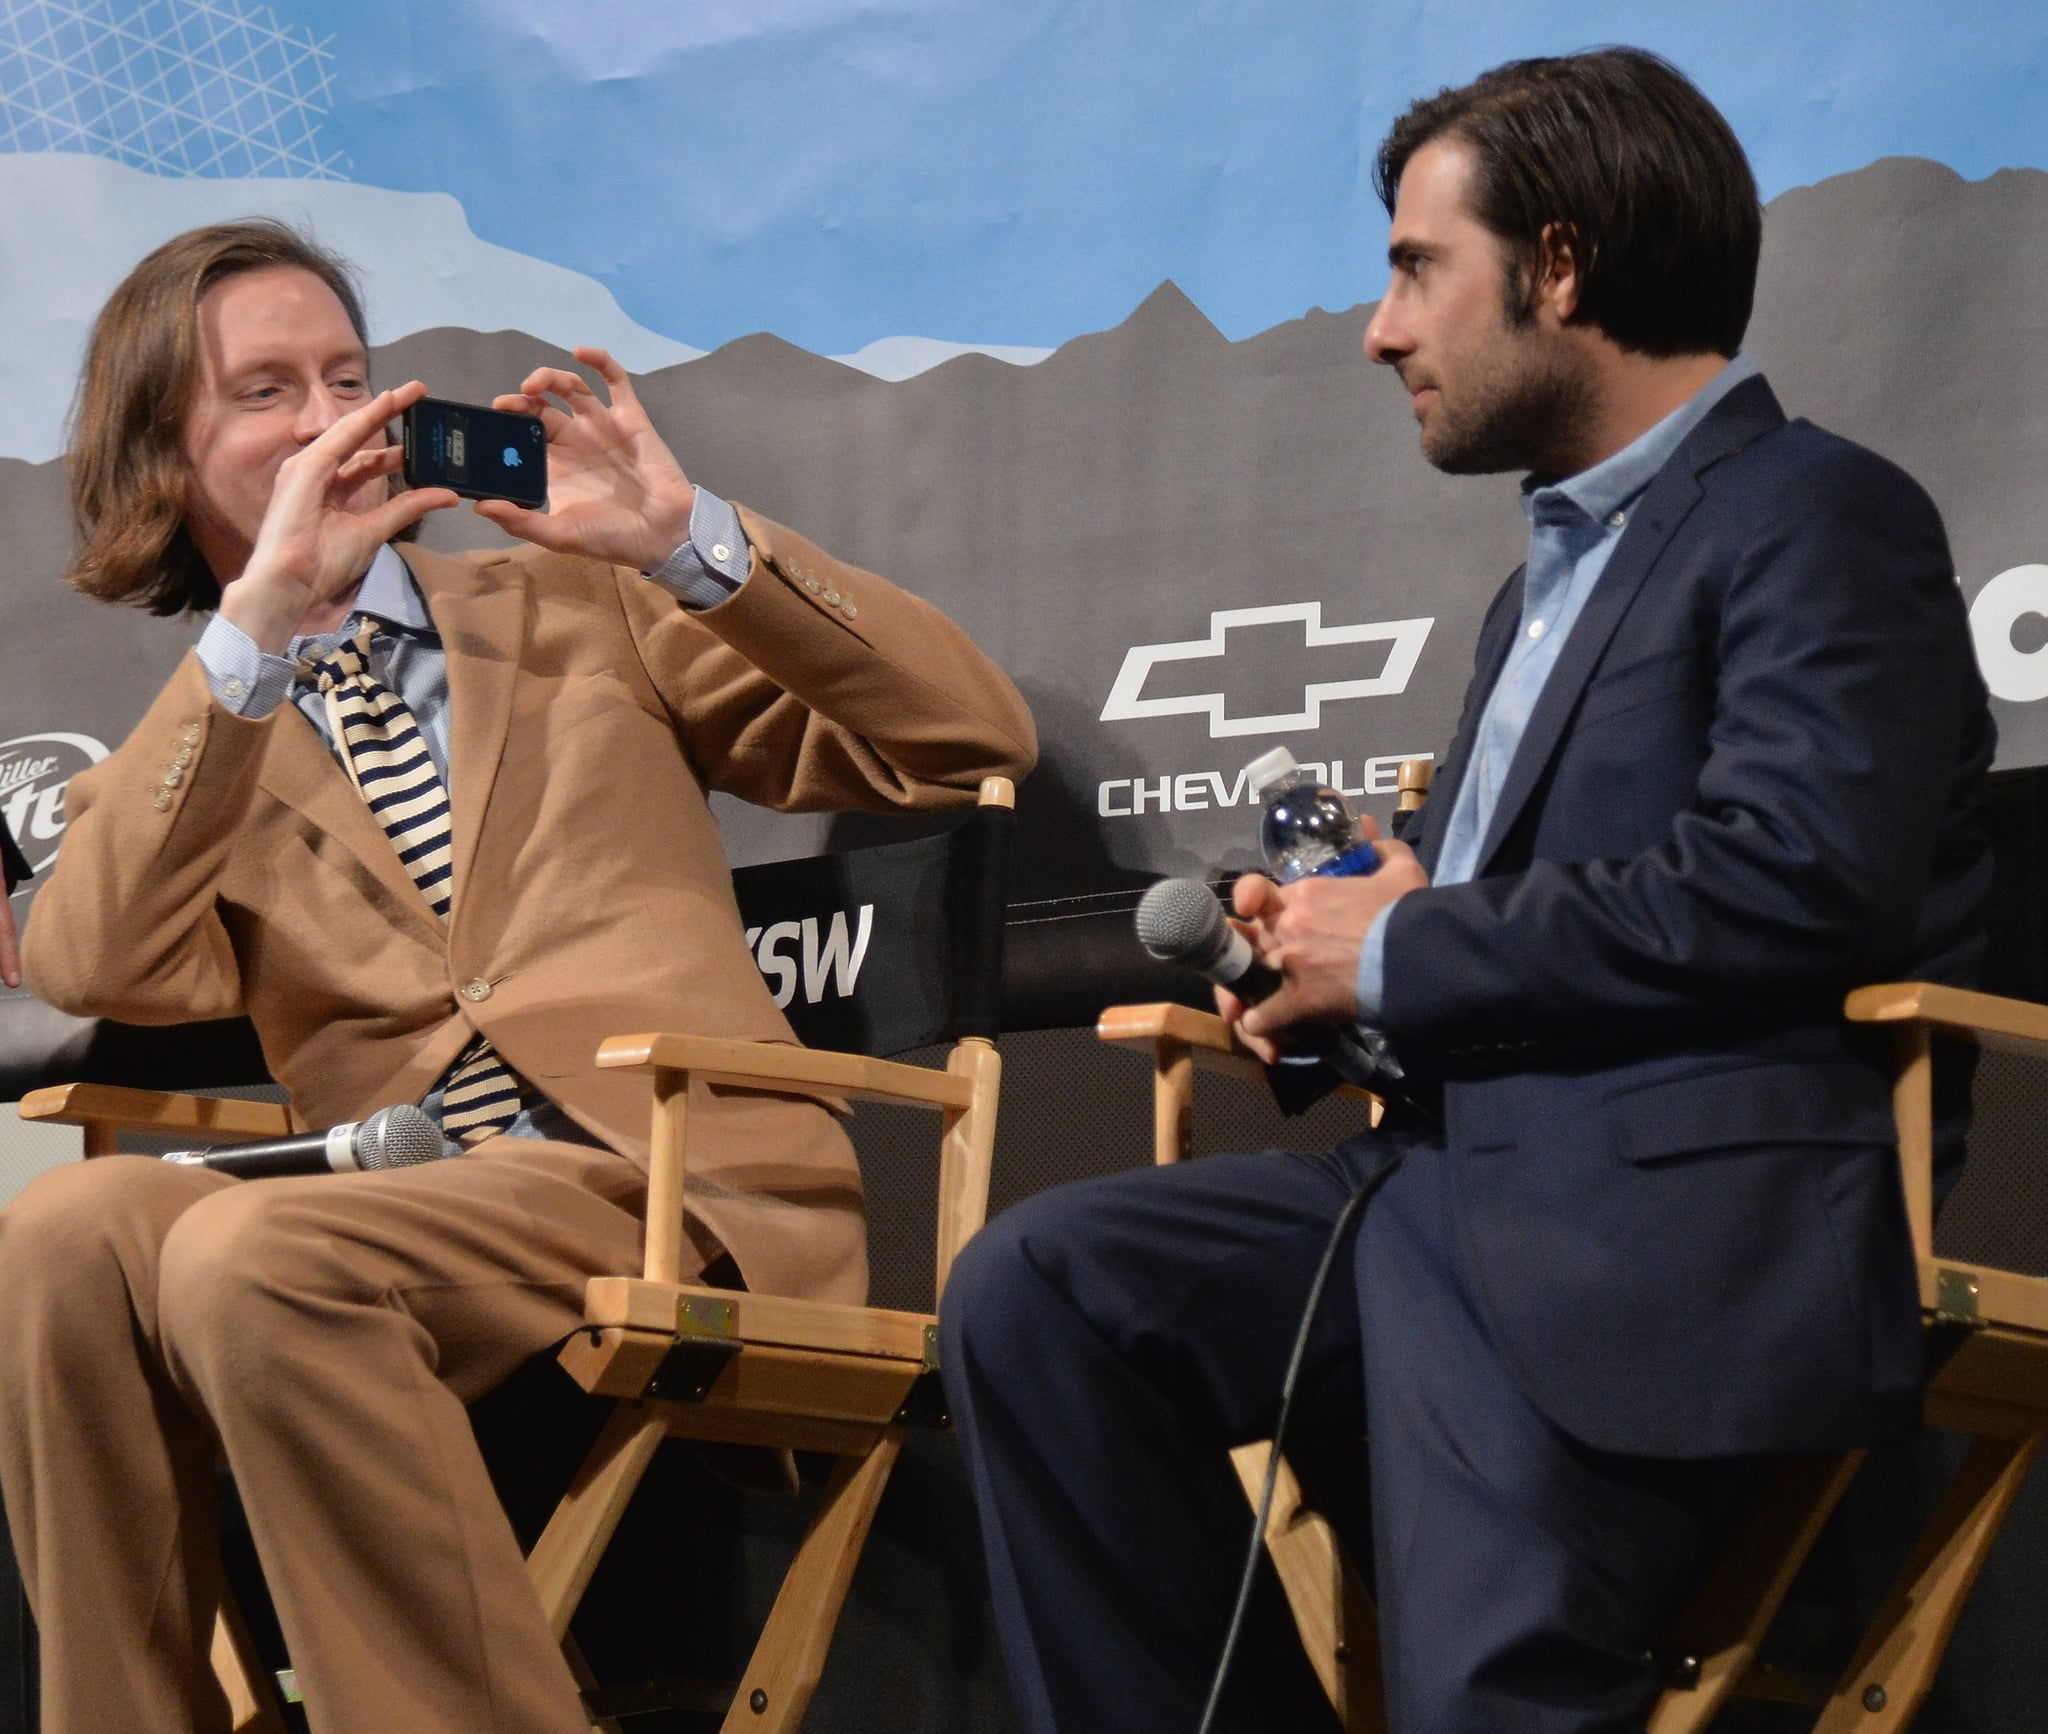 Wes Anderson snapped a photo of Jason Schwartzman on Monday.